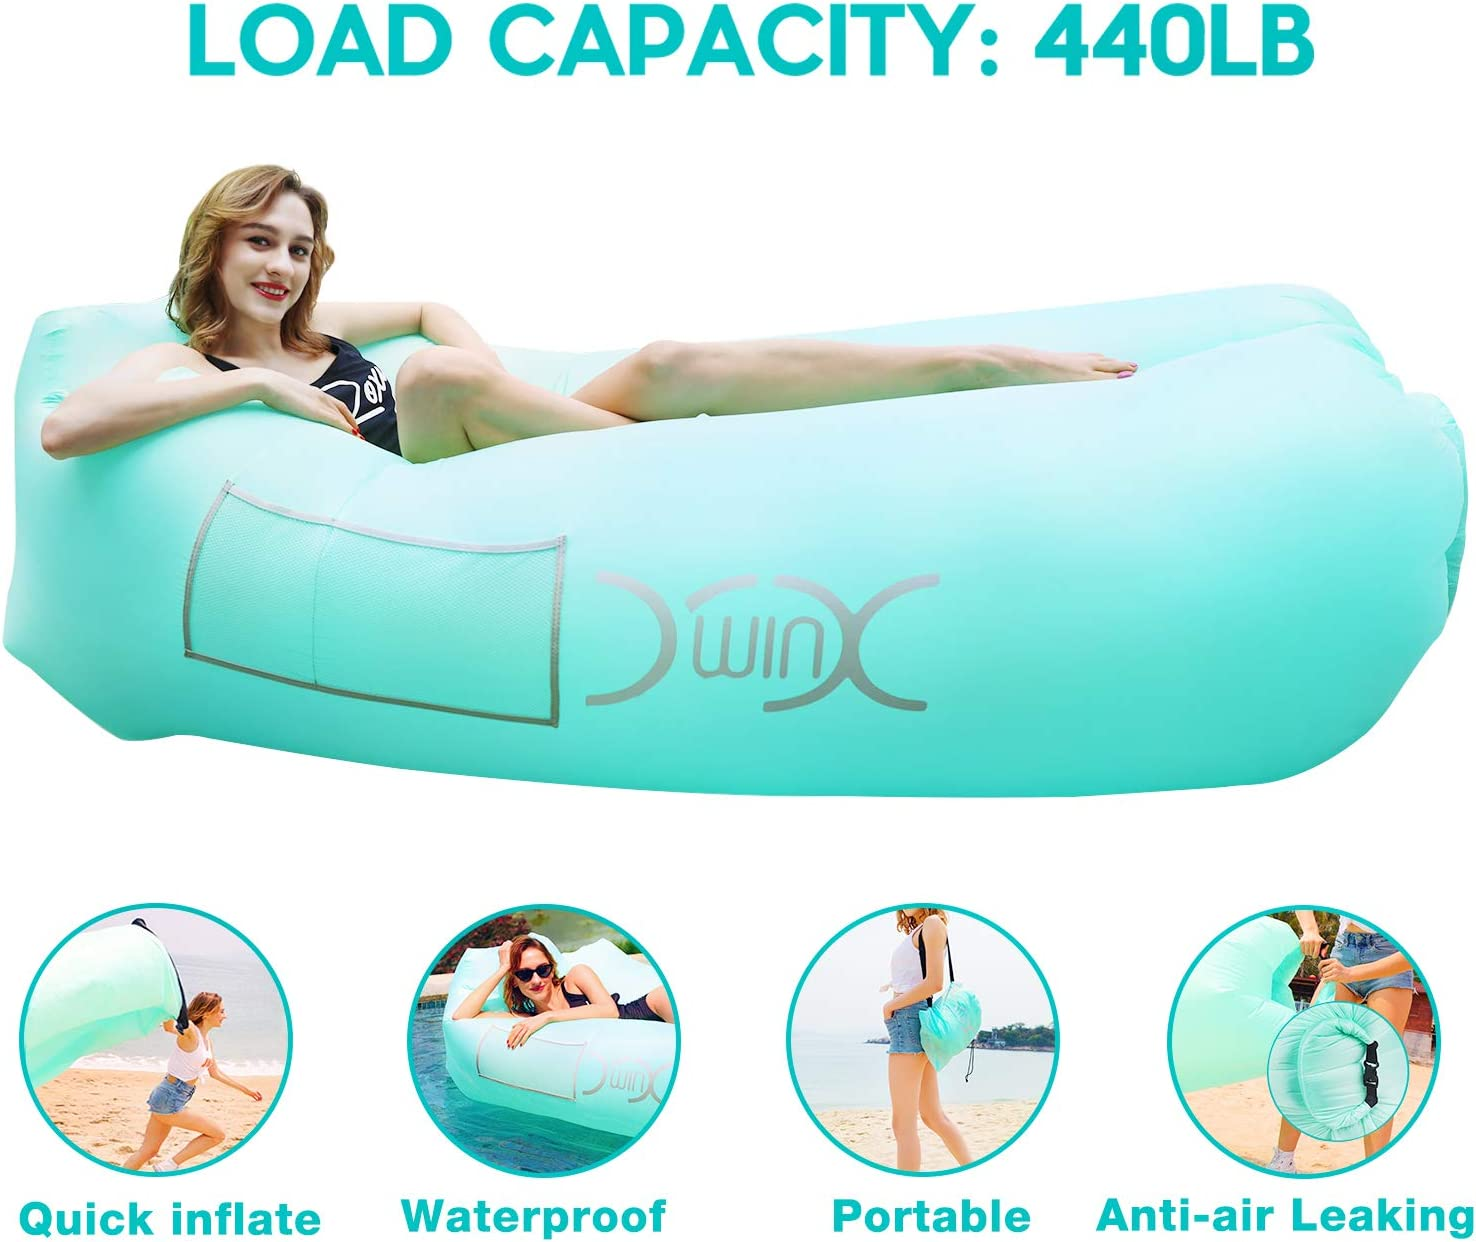 YXwin Inflatable Lounger Air Sofa New Orleans Mall Water 440lb Hammock latest Anti-Leak